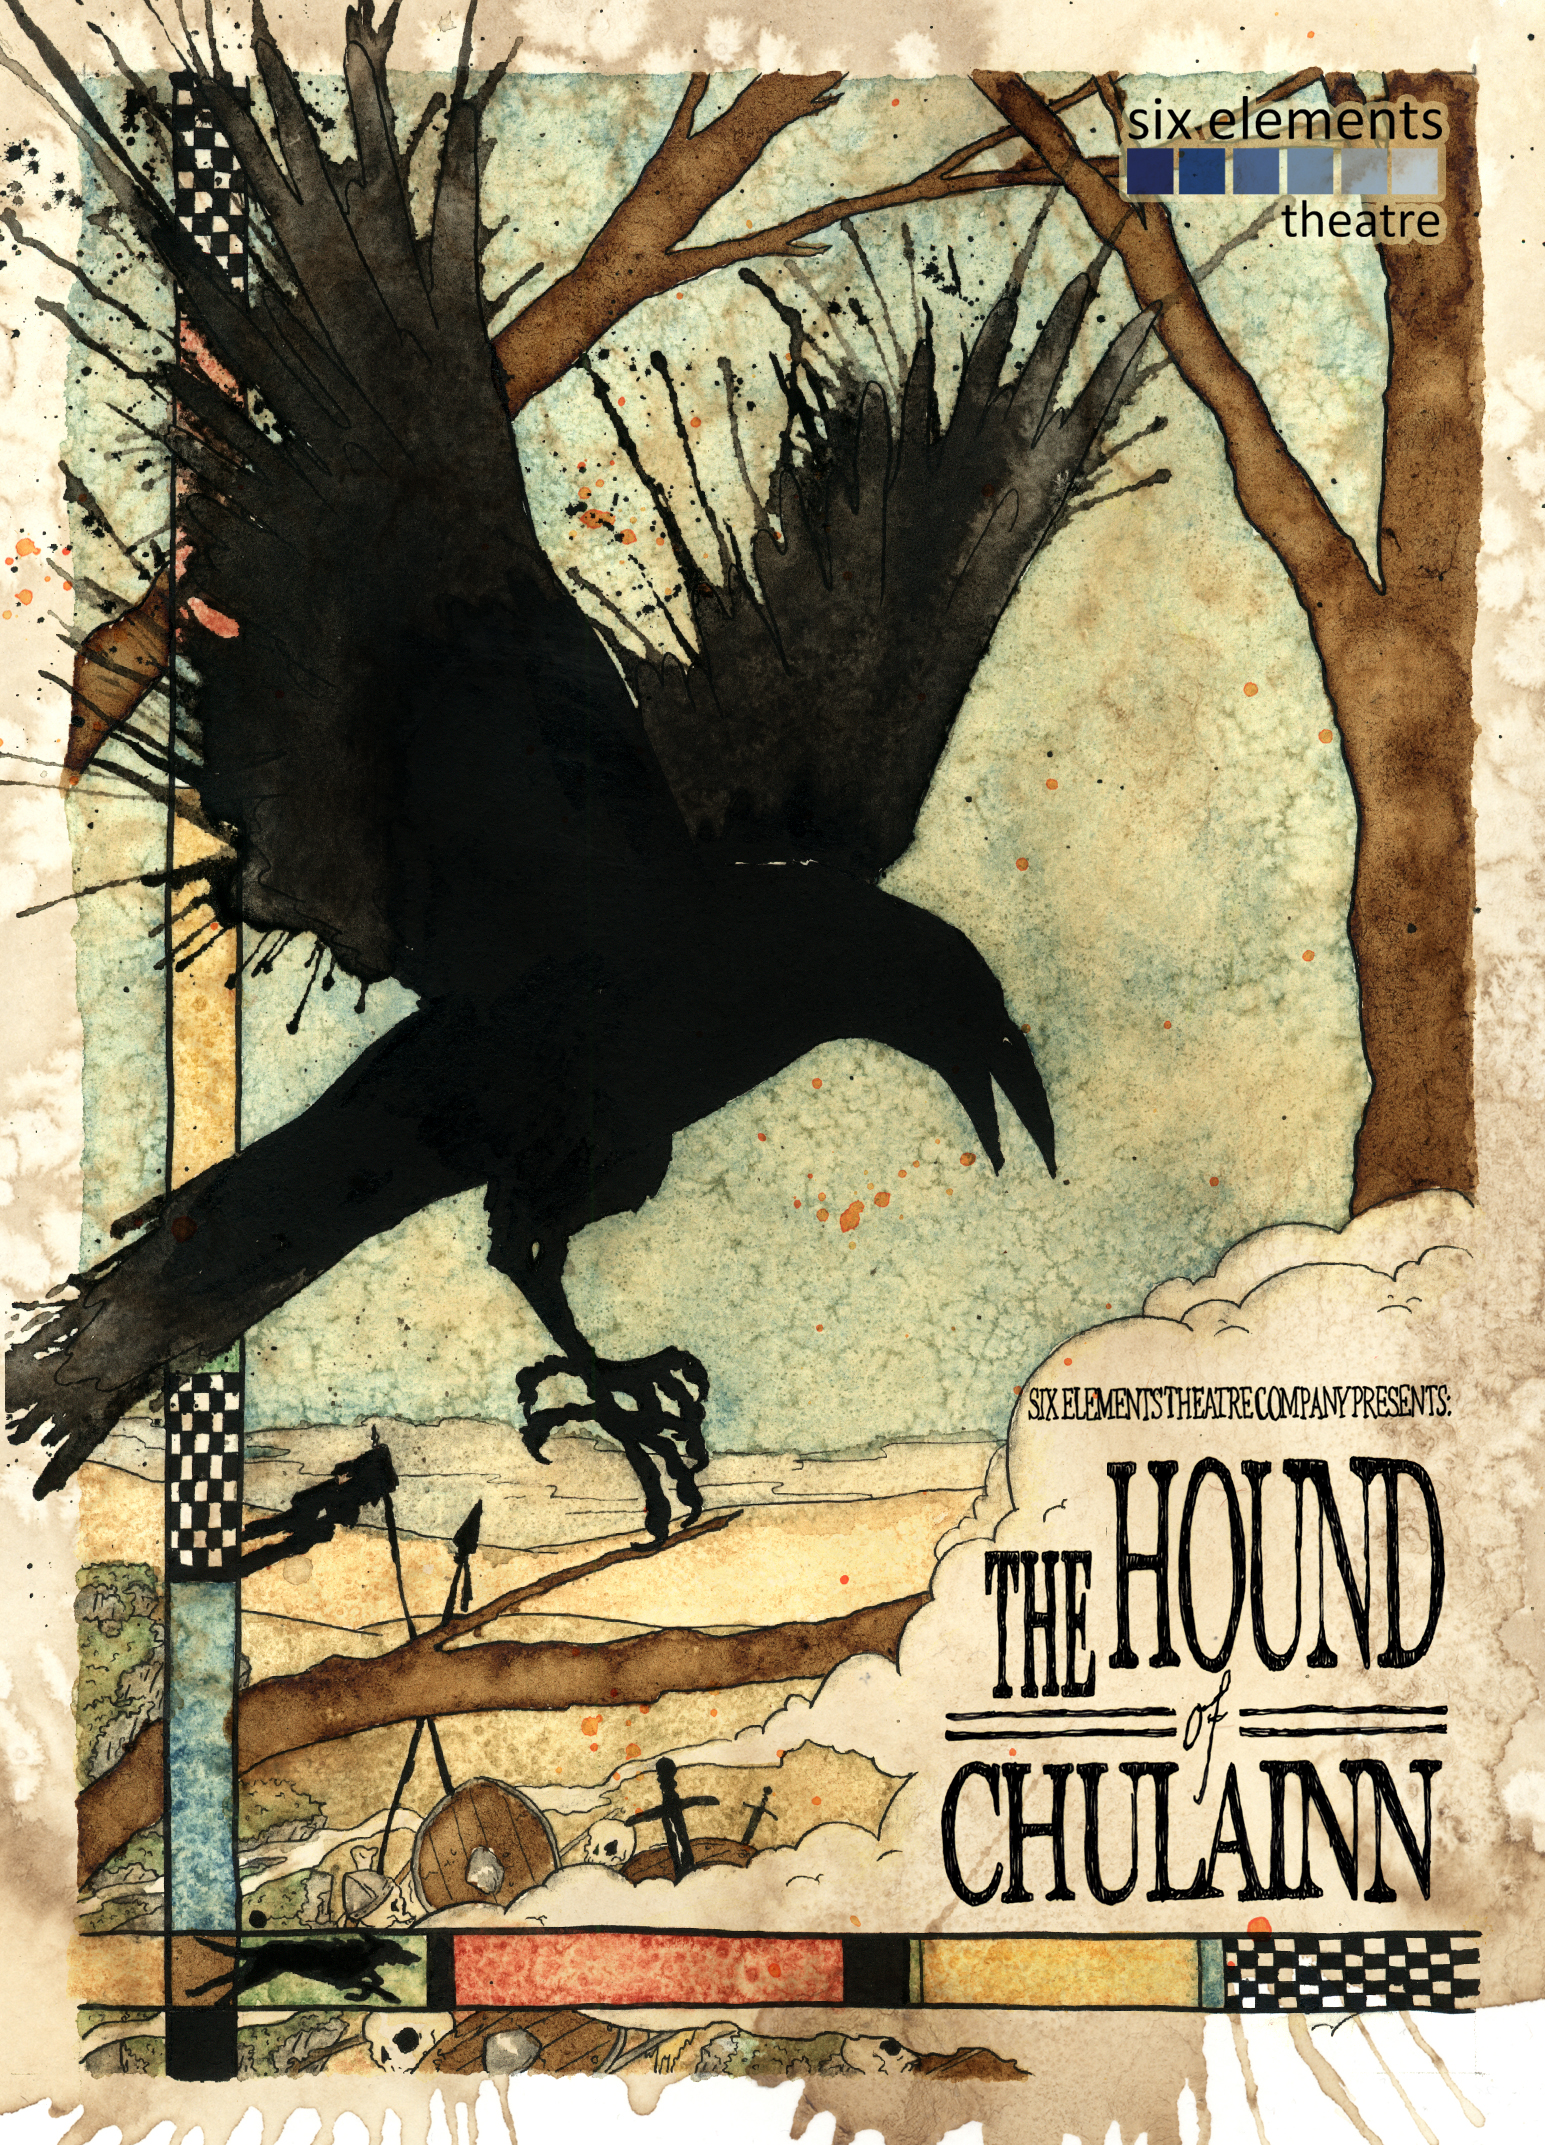 Hound of Chulainn Postcard